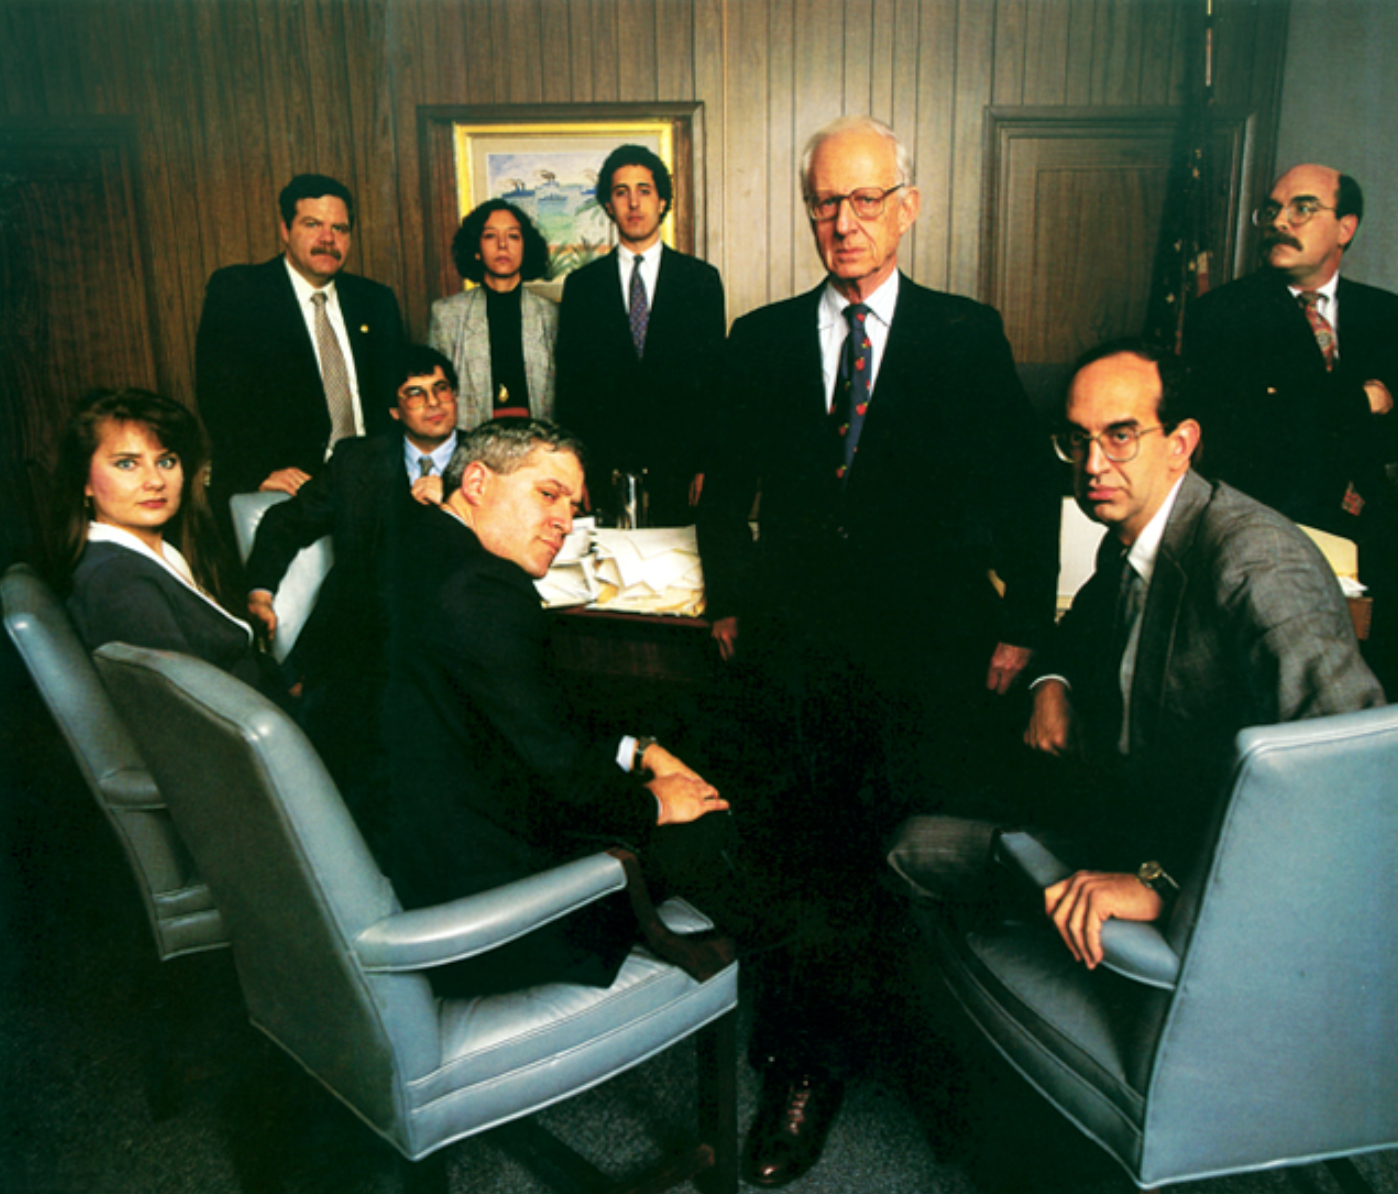 Morgenthau with staff